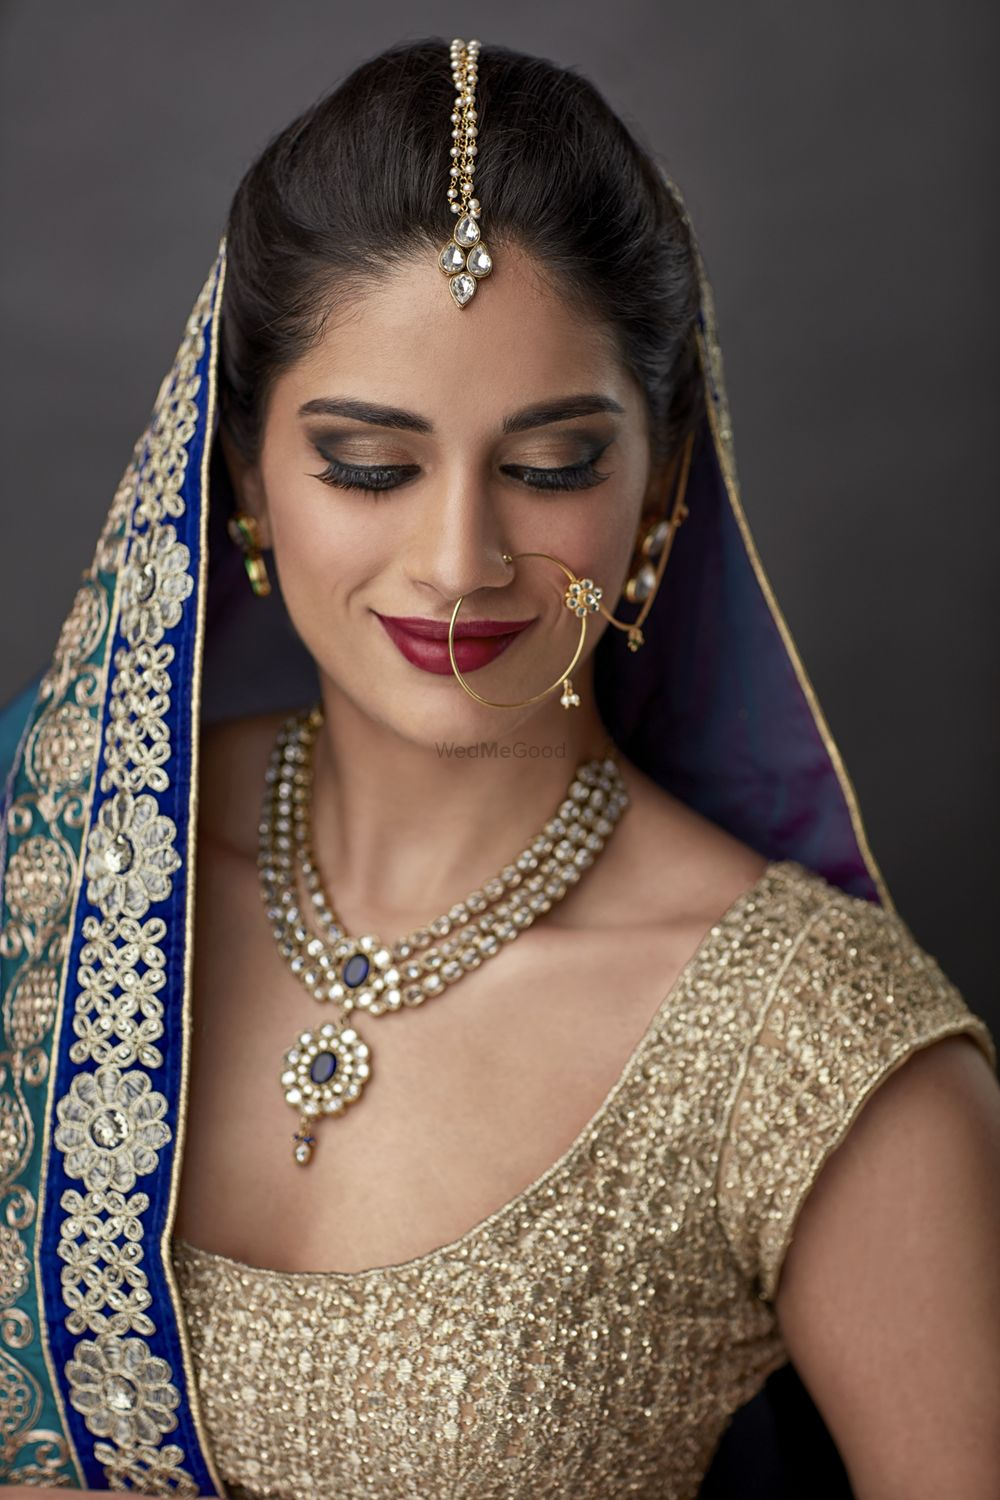 Photo of Emerald and diamond necklace with blue and gold lehenga